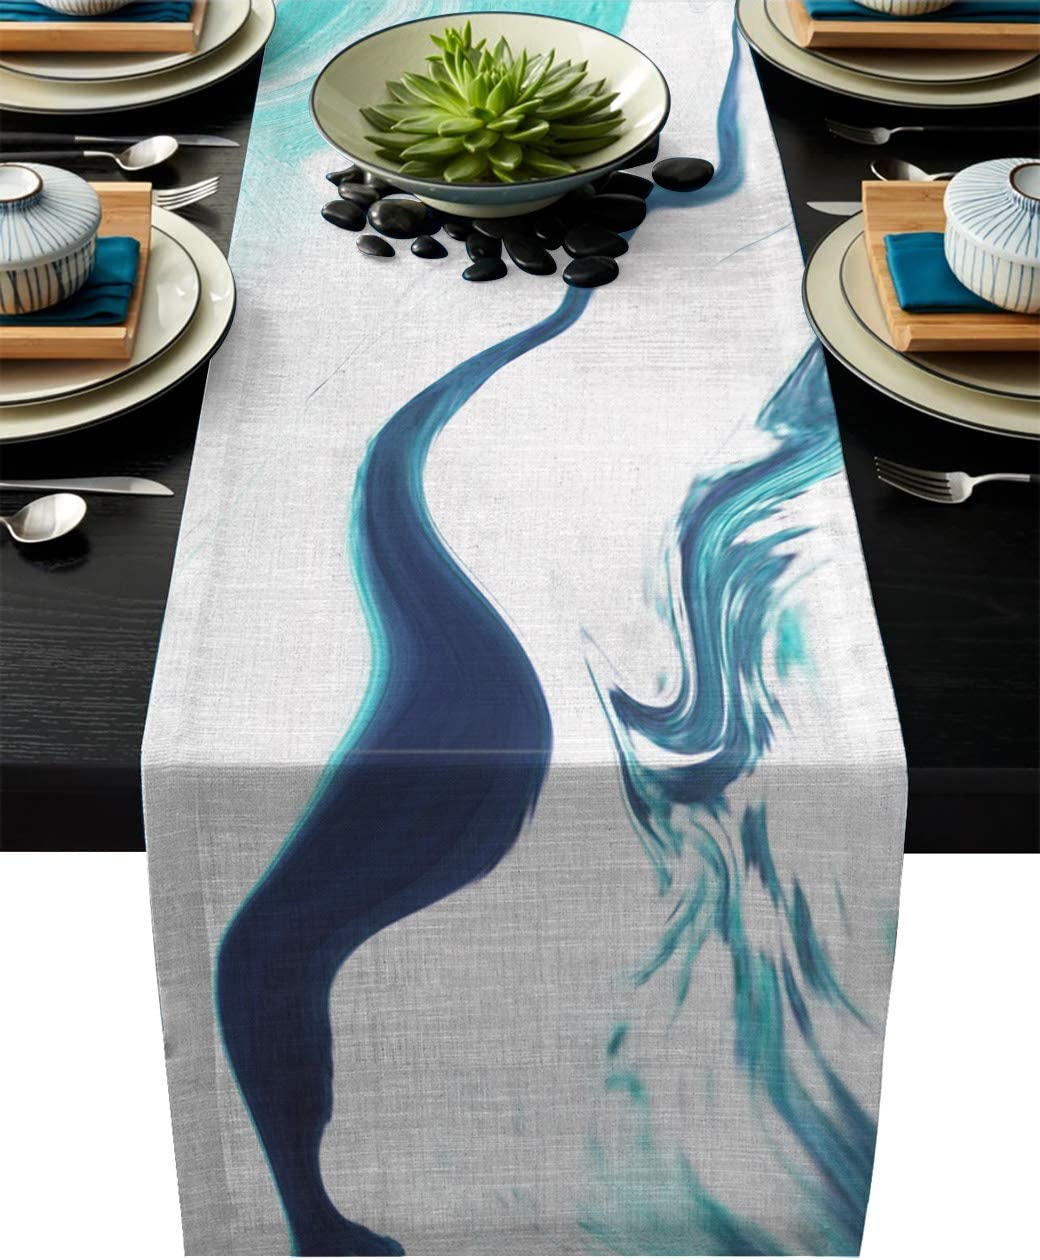 Abstract Water Waves Teal Dining Room Machine Washable 13x70 Inch Farmhouse Table Runners for Summer Parties Olivefox Linen Burlap Table Runner Wedding Decorations Home Kitchen